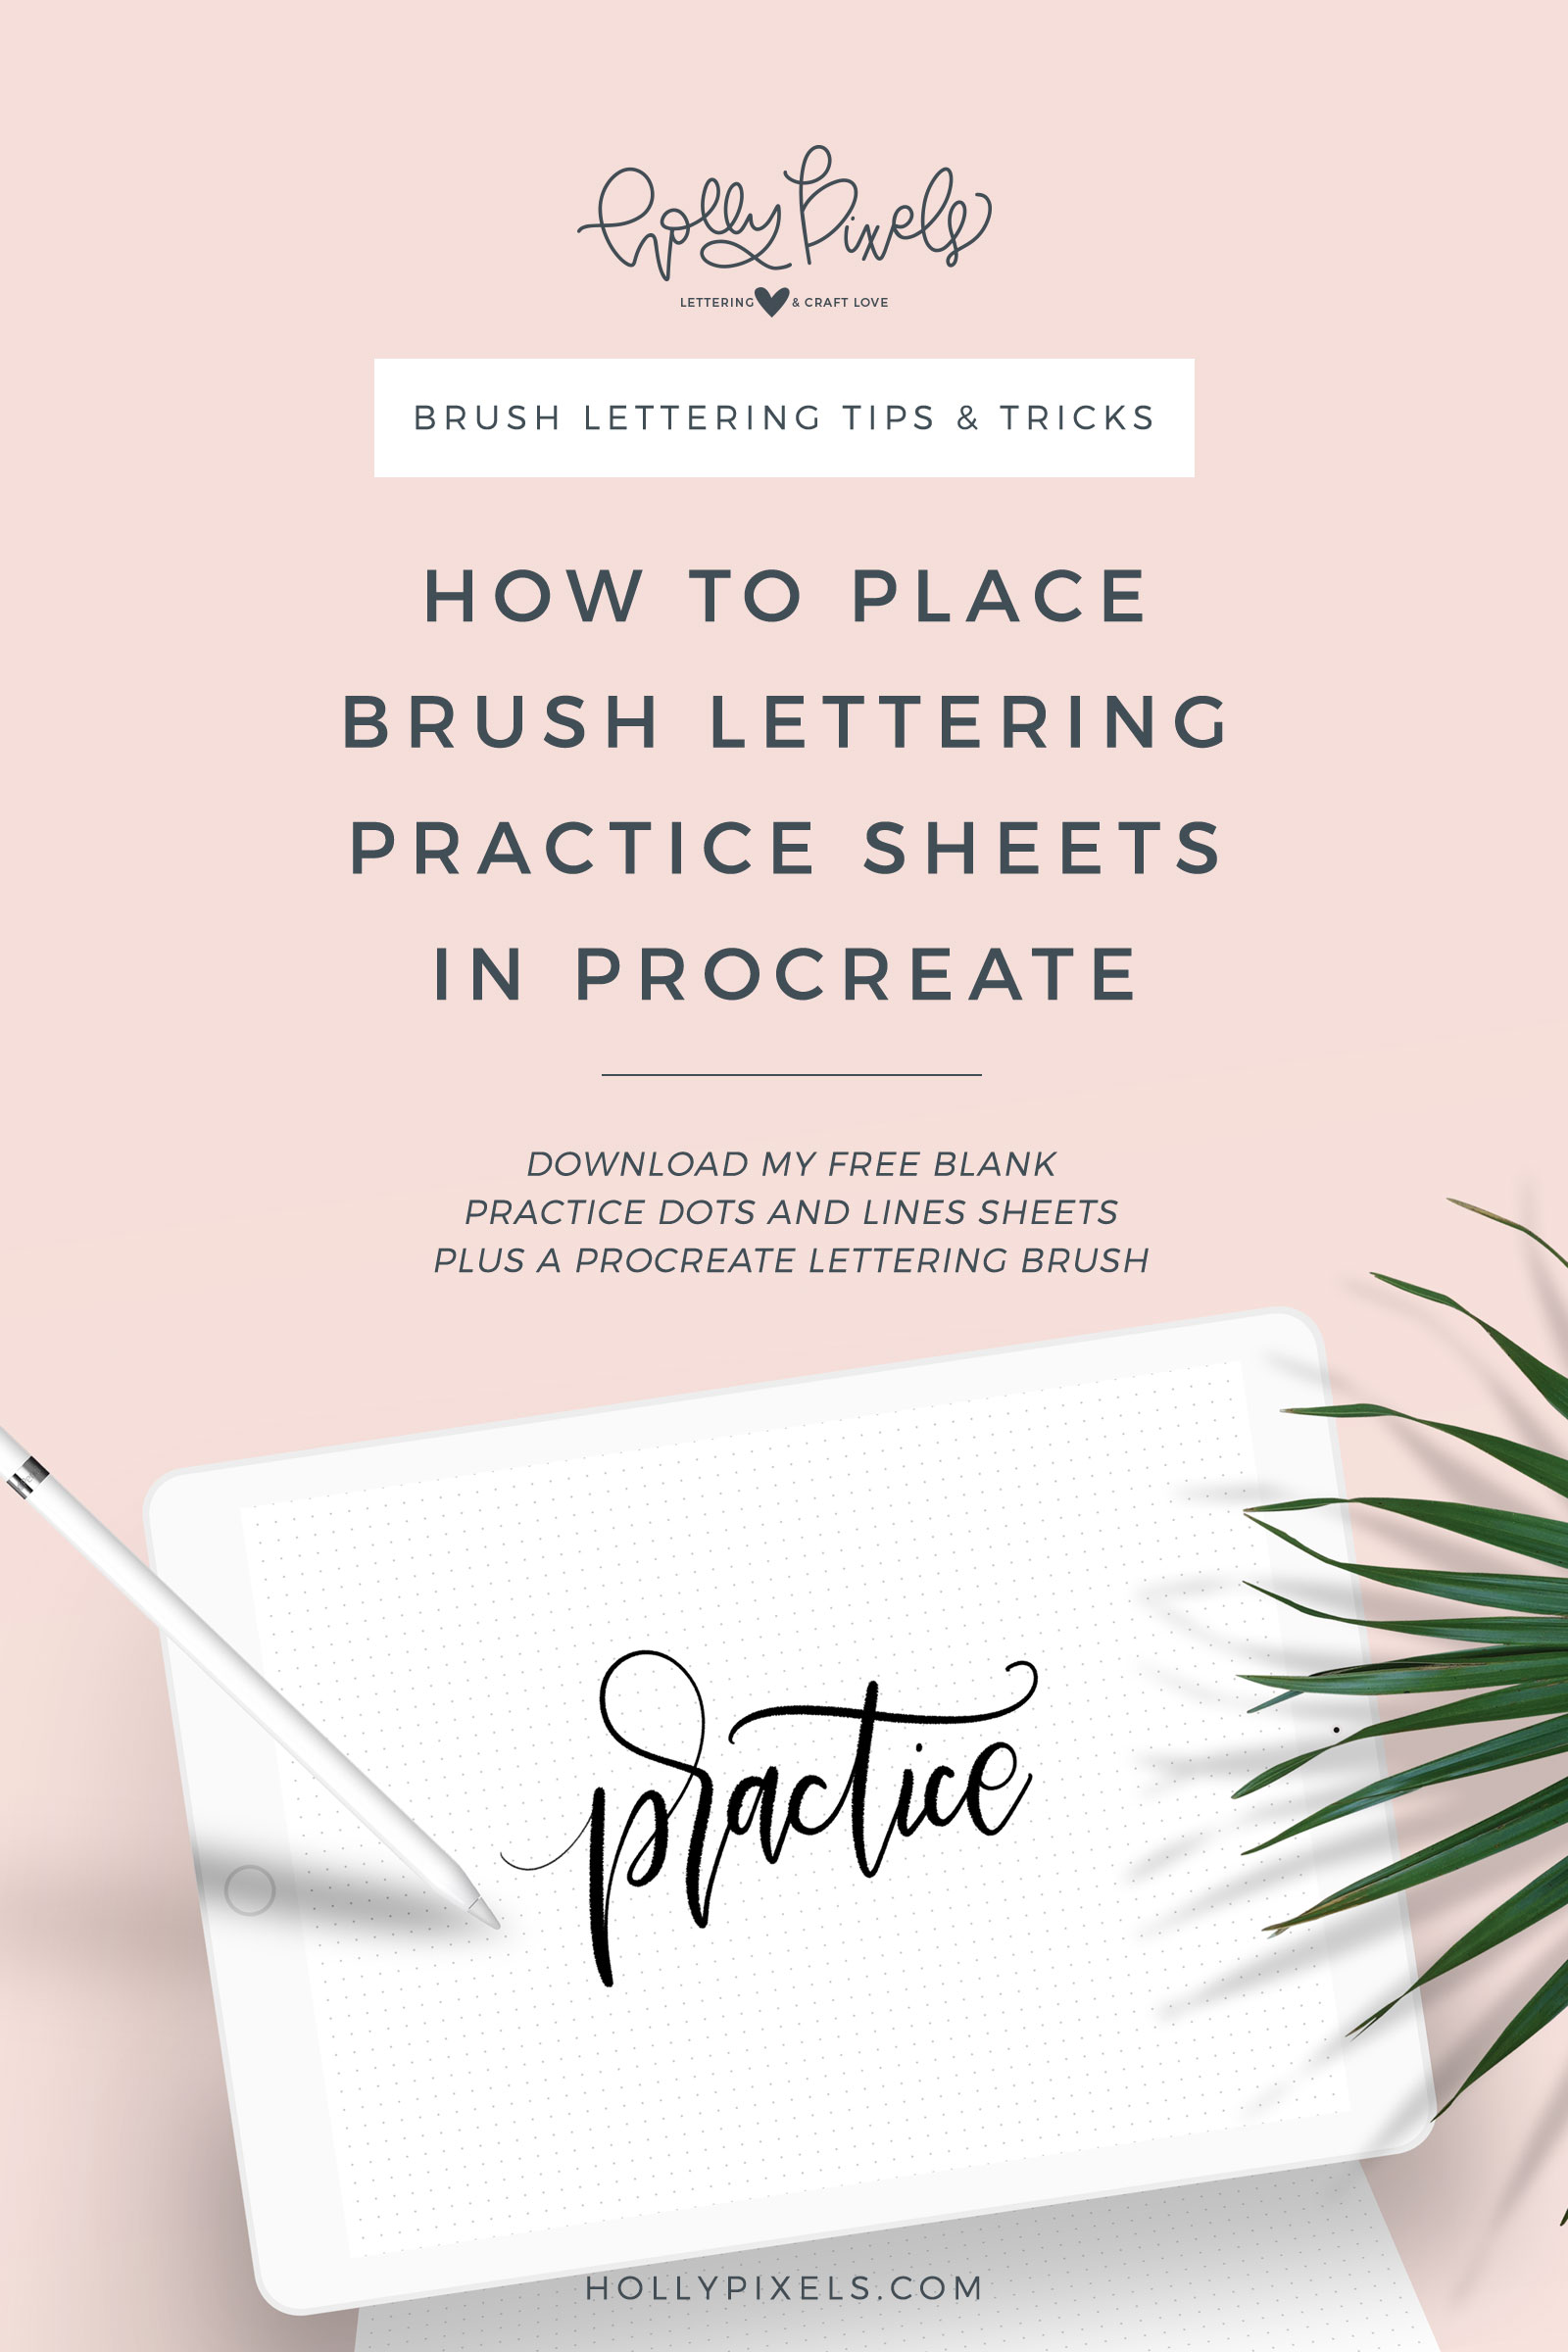 How to place brush lettering practice sheets in Procreate. Download my free brush lettering practice blanks and free Procreate brush. Visit hollypixels.com for free sheets and a Procreate brush.